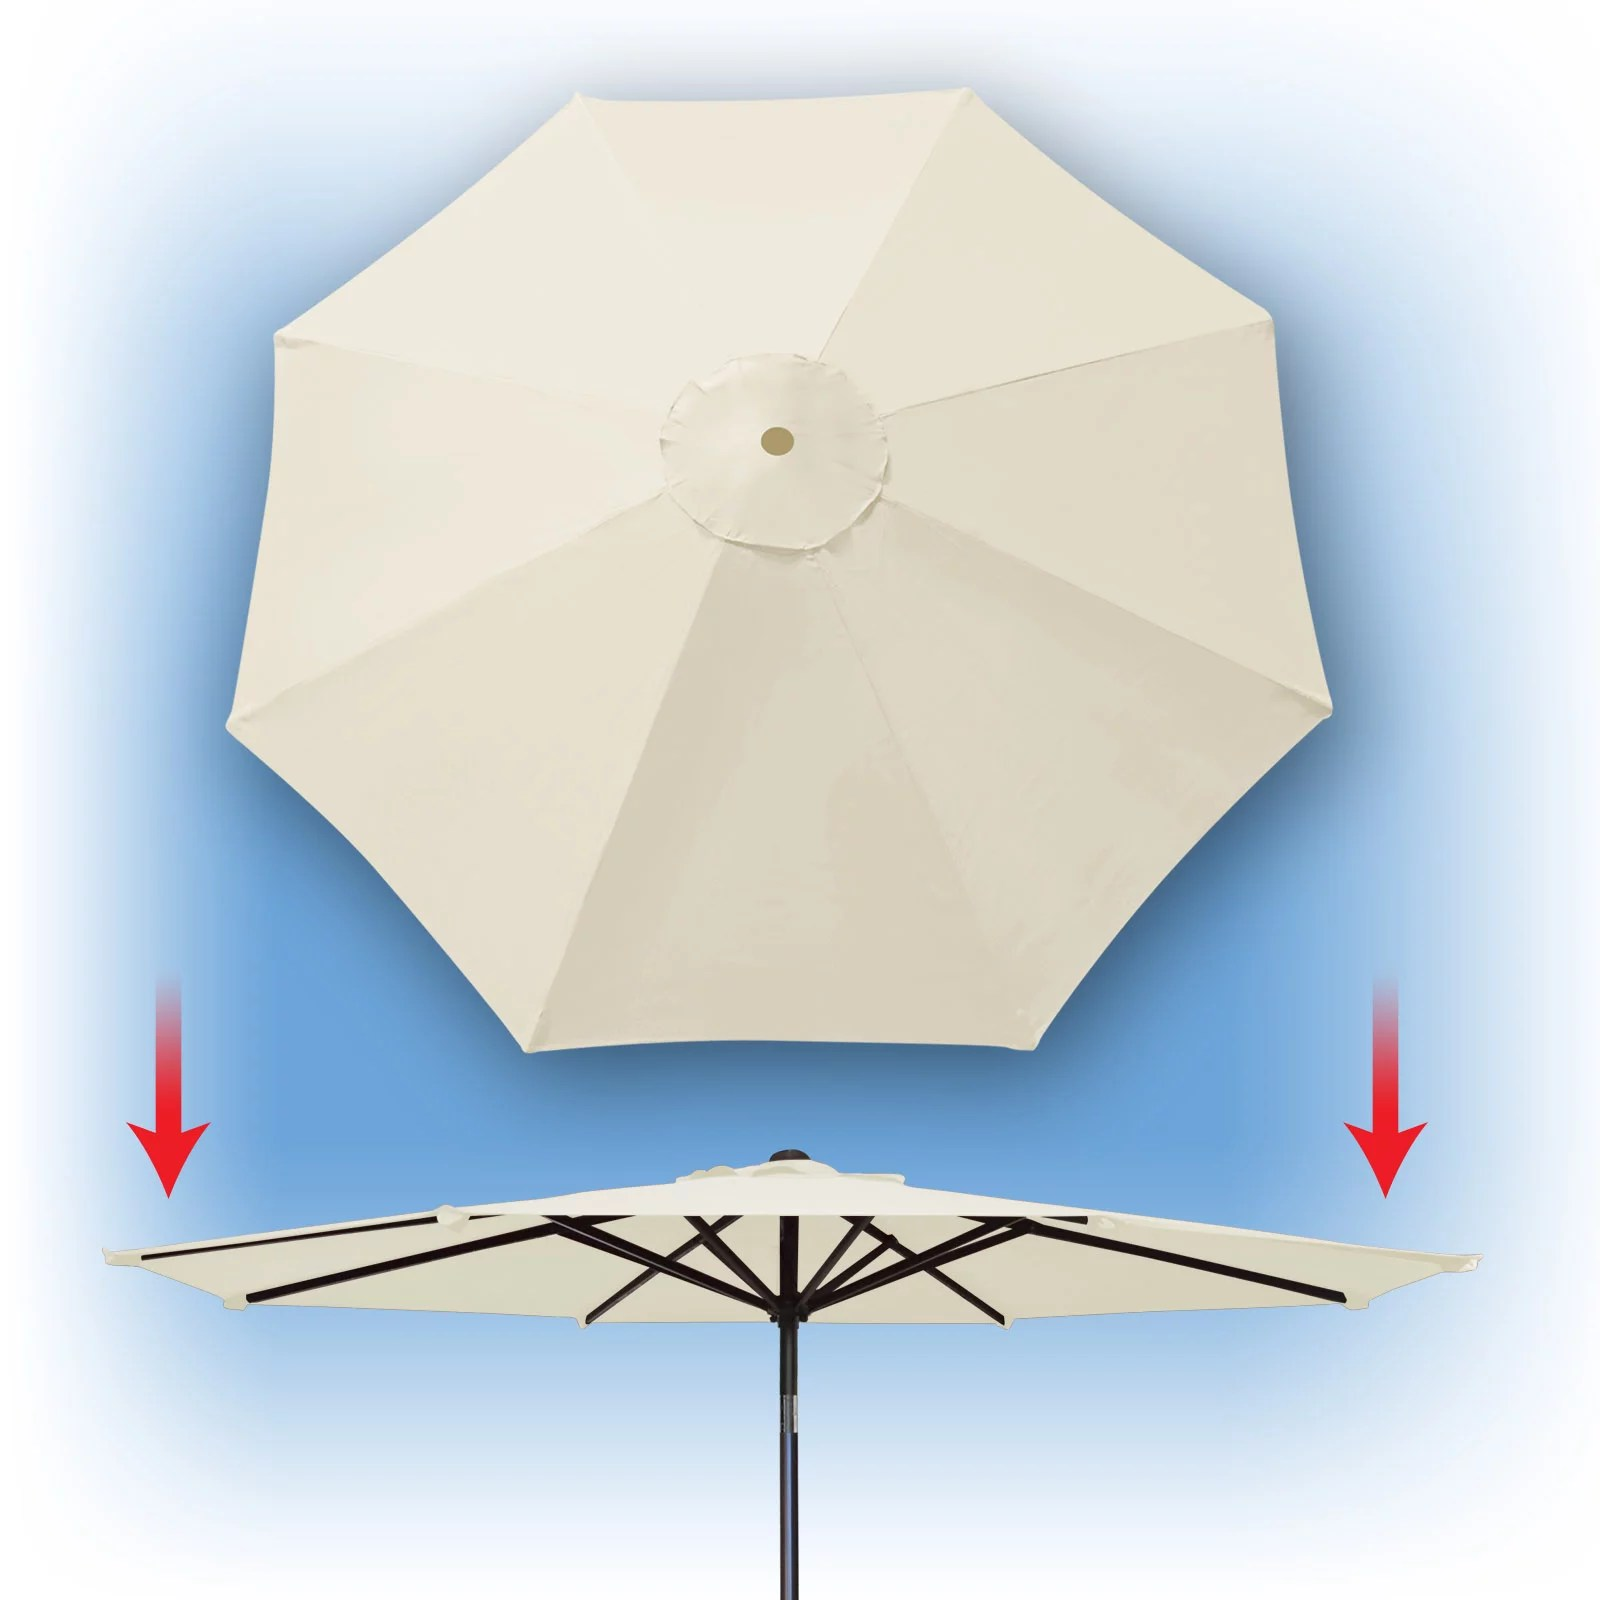 sunrise 9ft 8 ribs outdoor patio umbrella cover canopy replacement cover top ecru cover only umbrella frame not included walmart com